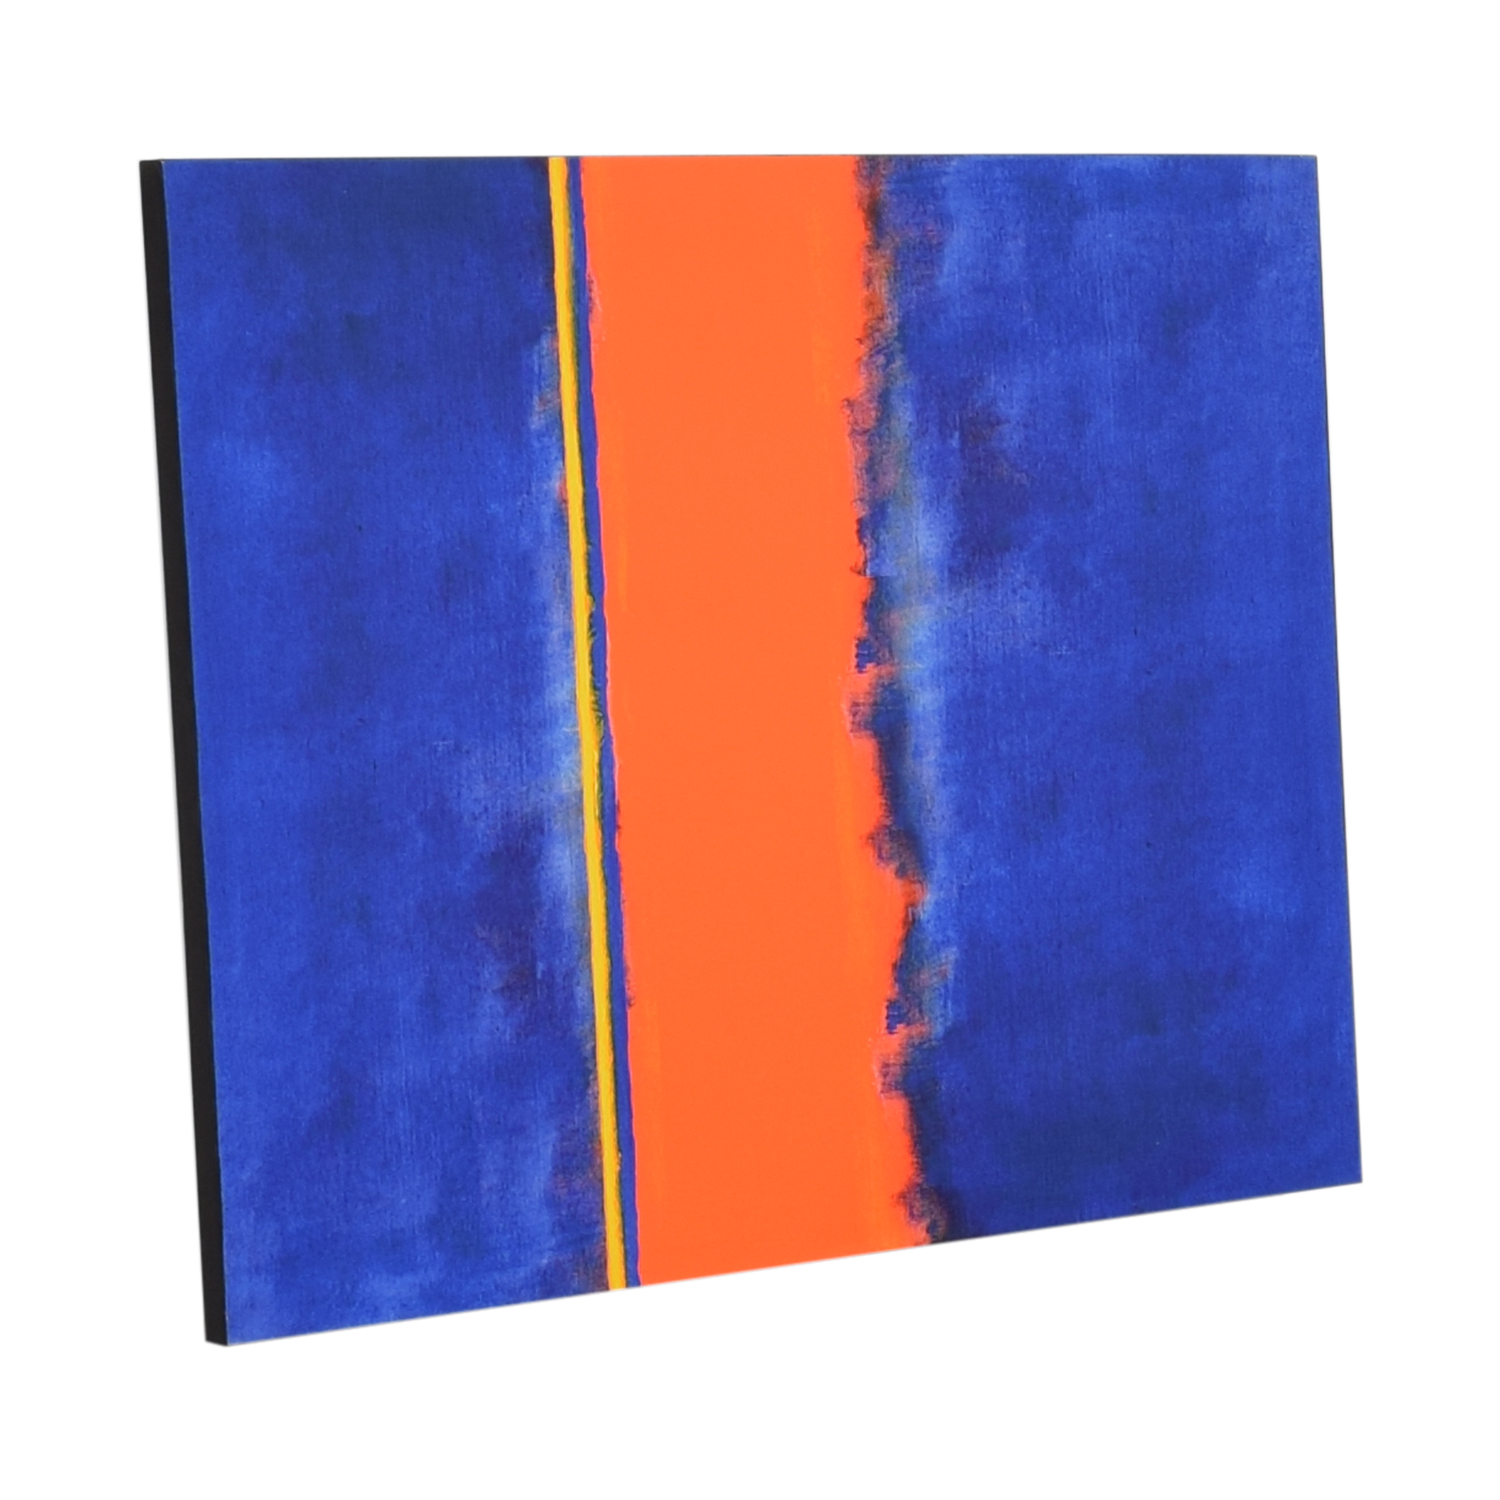 Vibrant Blue and Orange Painting on sale